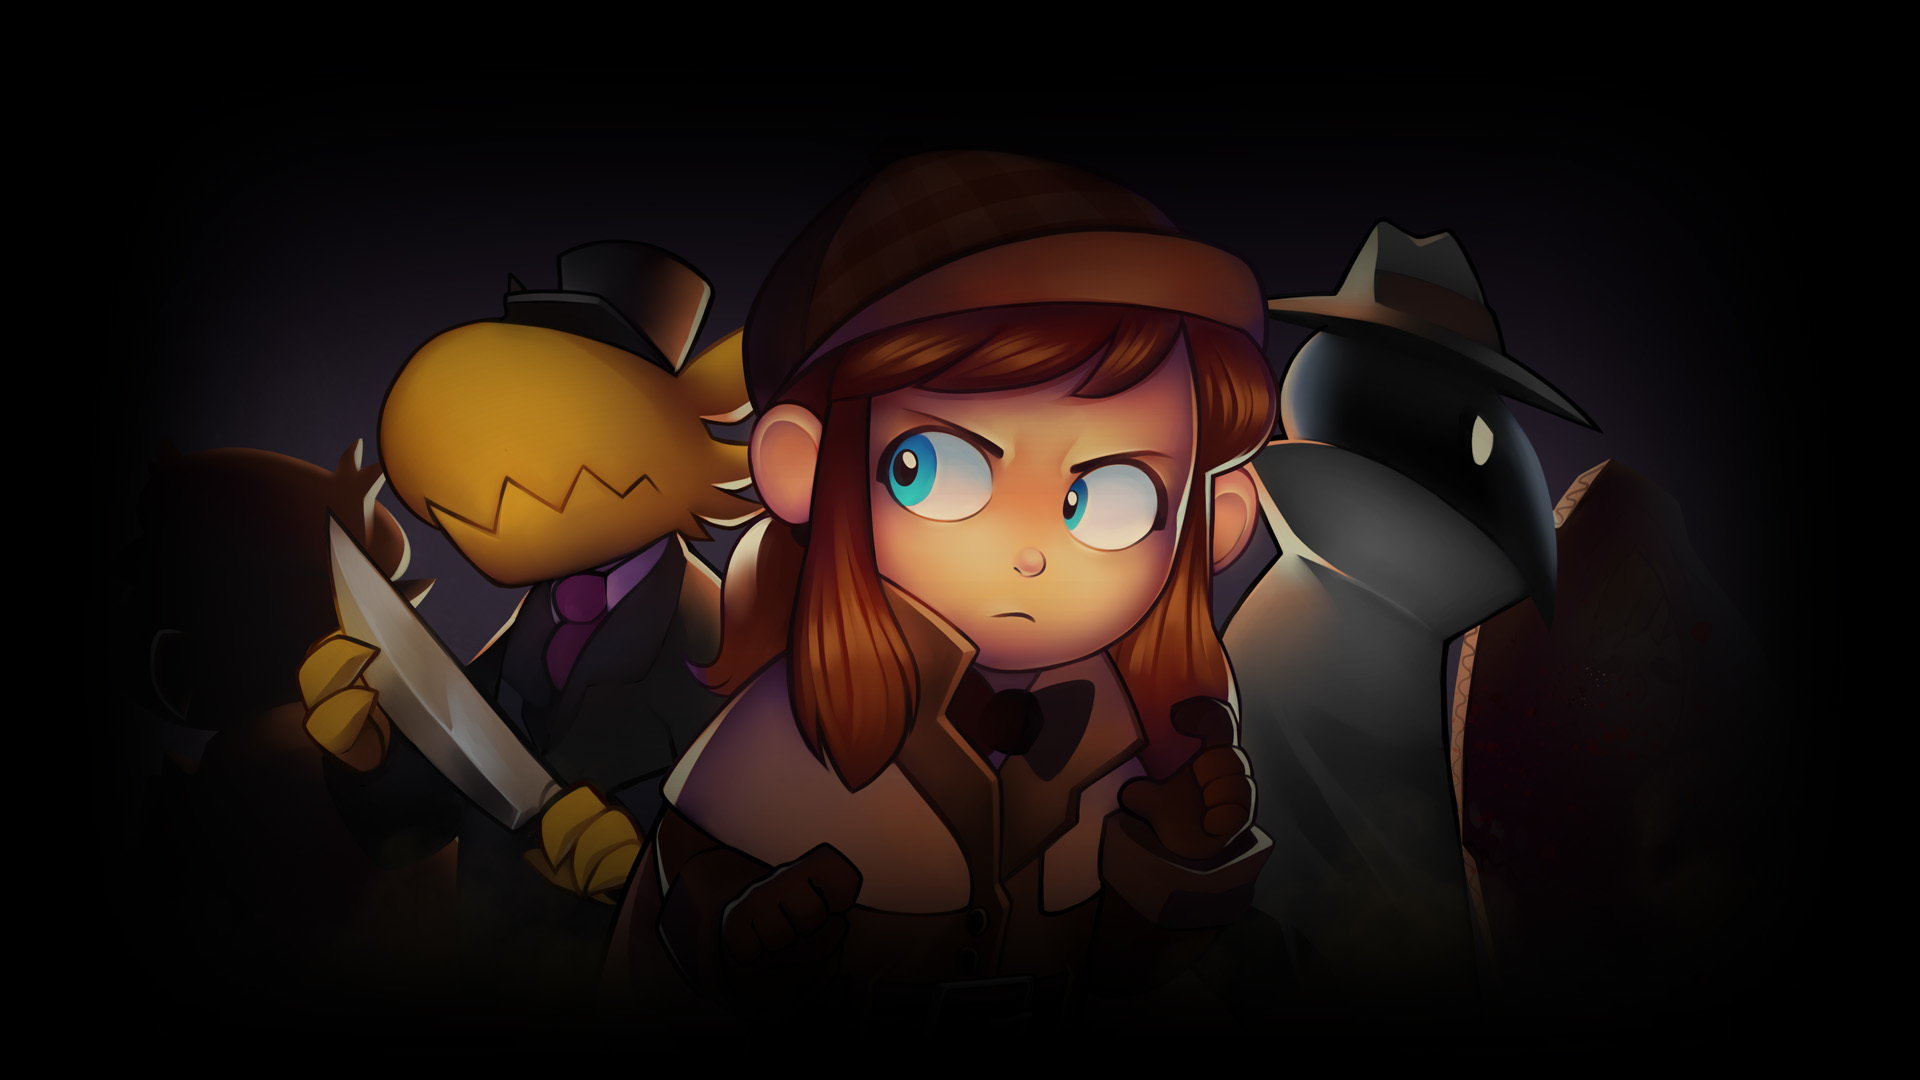 Steam workshop a hat in time awesome levels time rifts - Doge steam background ...